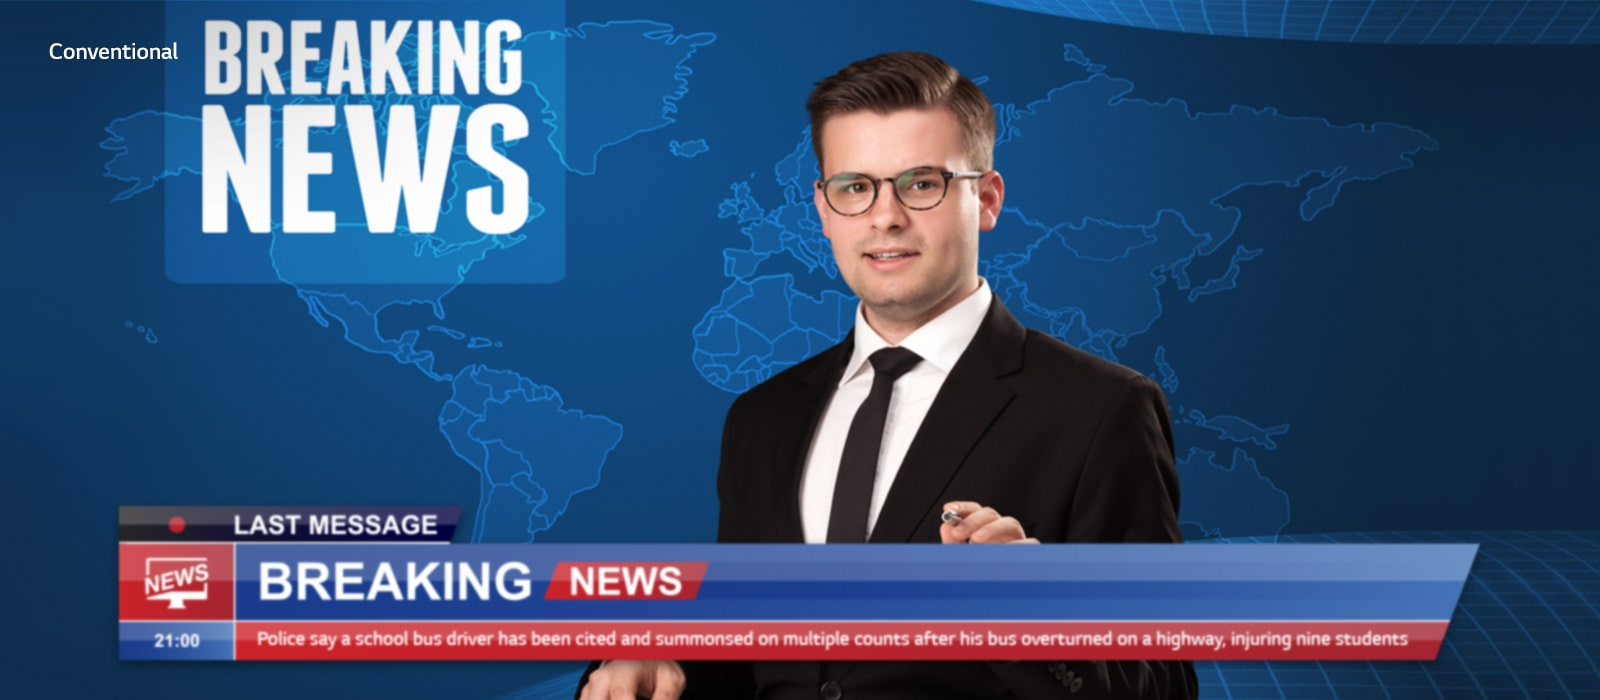 Slider comparison of picture quality of an anchor delivering breaking news with background of world map